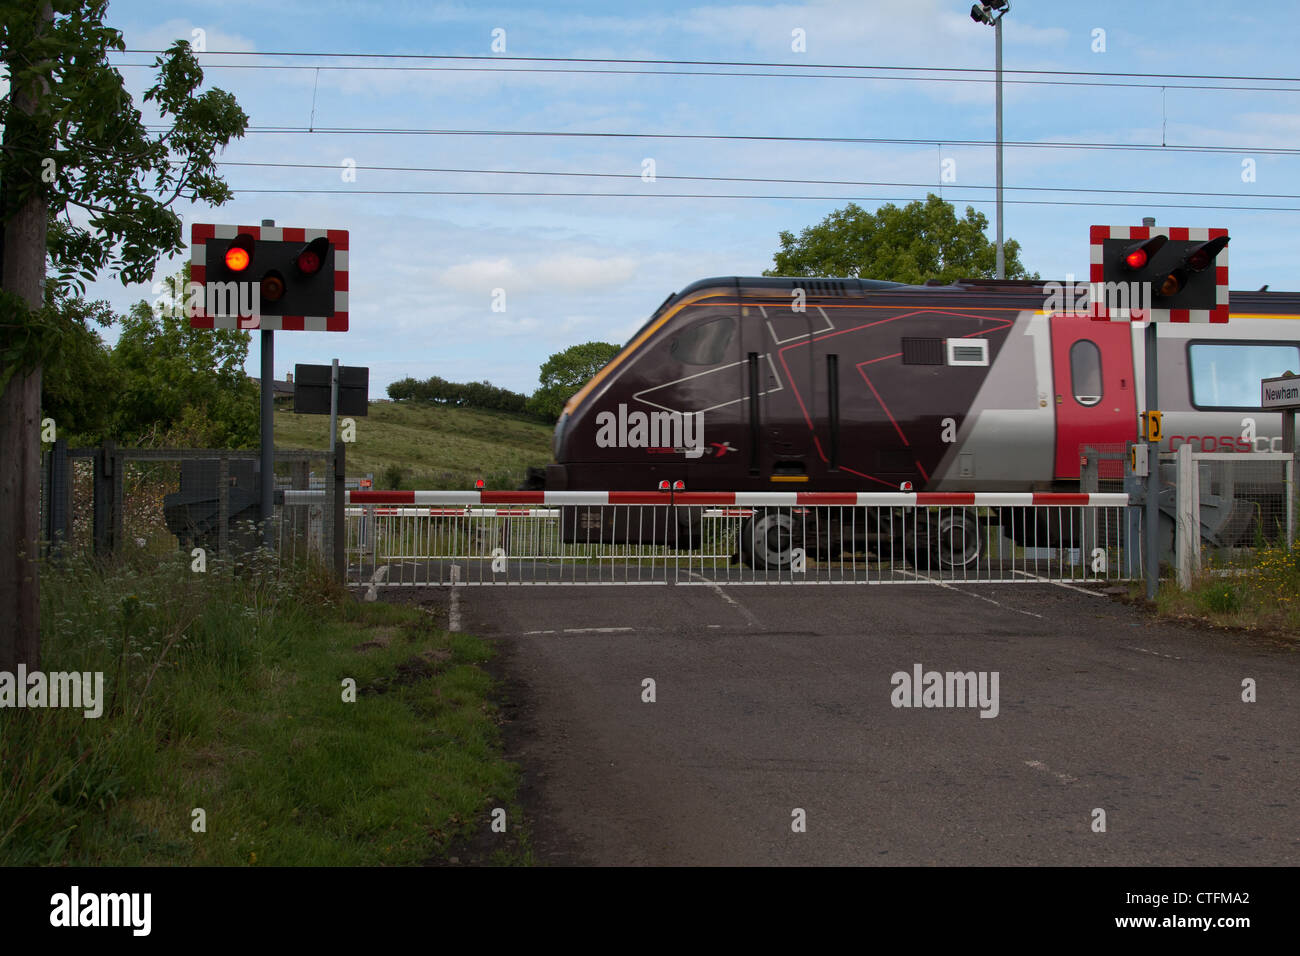 Front of Cross Country Train at Level Crossing on the East Coast Mainline in North East England - Stock Image